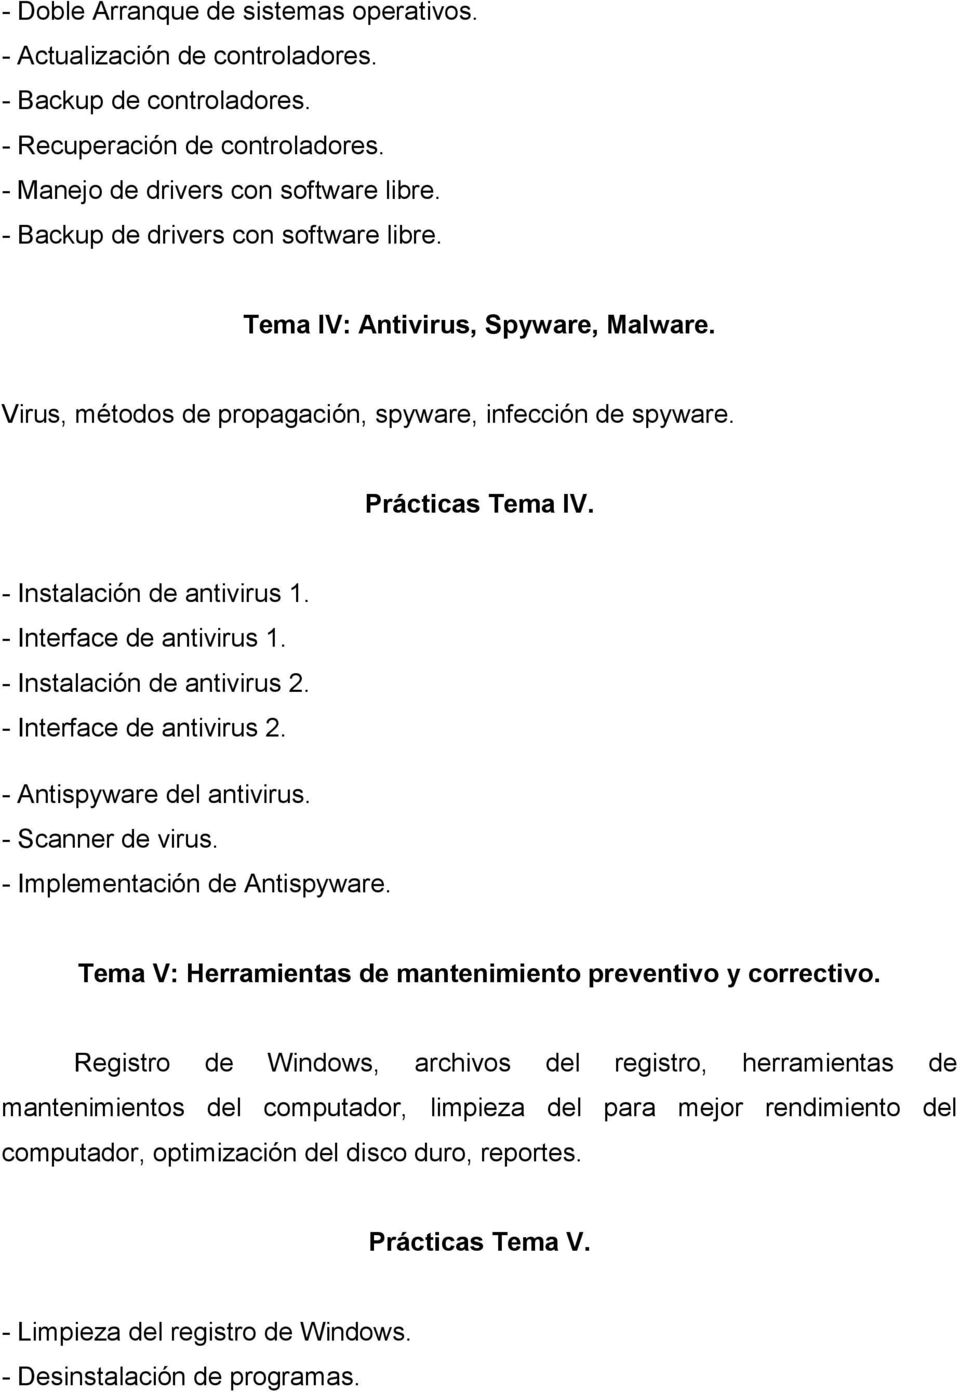 - Interface de antivirus 1. - Instalación de antivirus 2. - Interface de antivirus 2. - Antispyware del antivirus. - Scanner de virus. - Implementación de Antispyware.